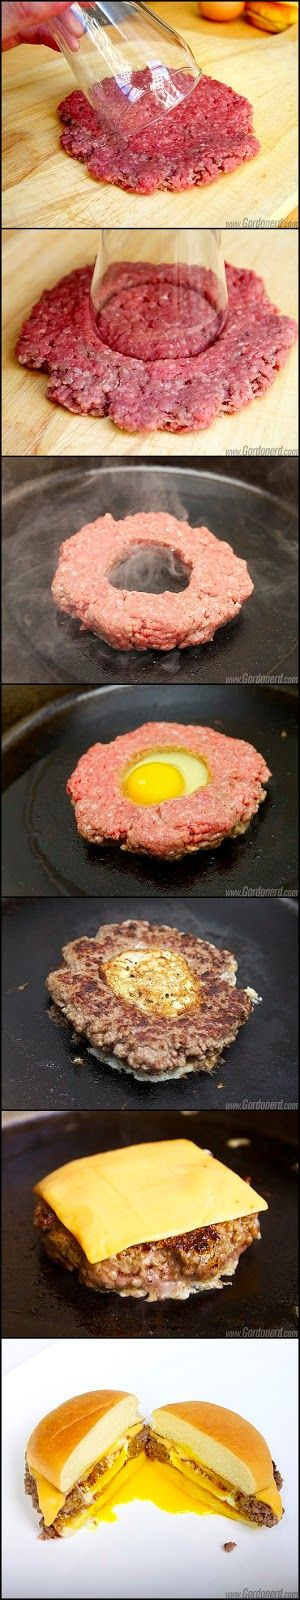 I saw racheal ray make these... definitely intrigued! !! She called them cowboy burgers.... I'm going to do turkey with no cheese or low fat cheese and no bun (if dinner) or wheat bagel (for lunch). Added protein!!